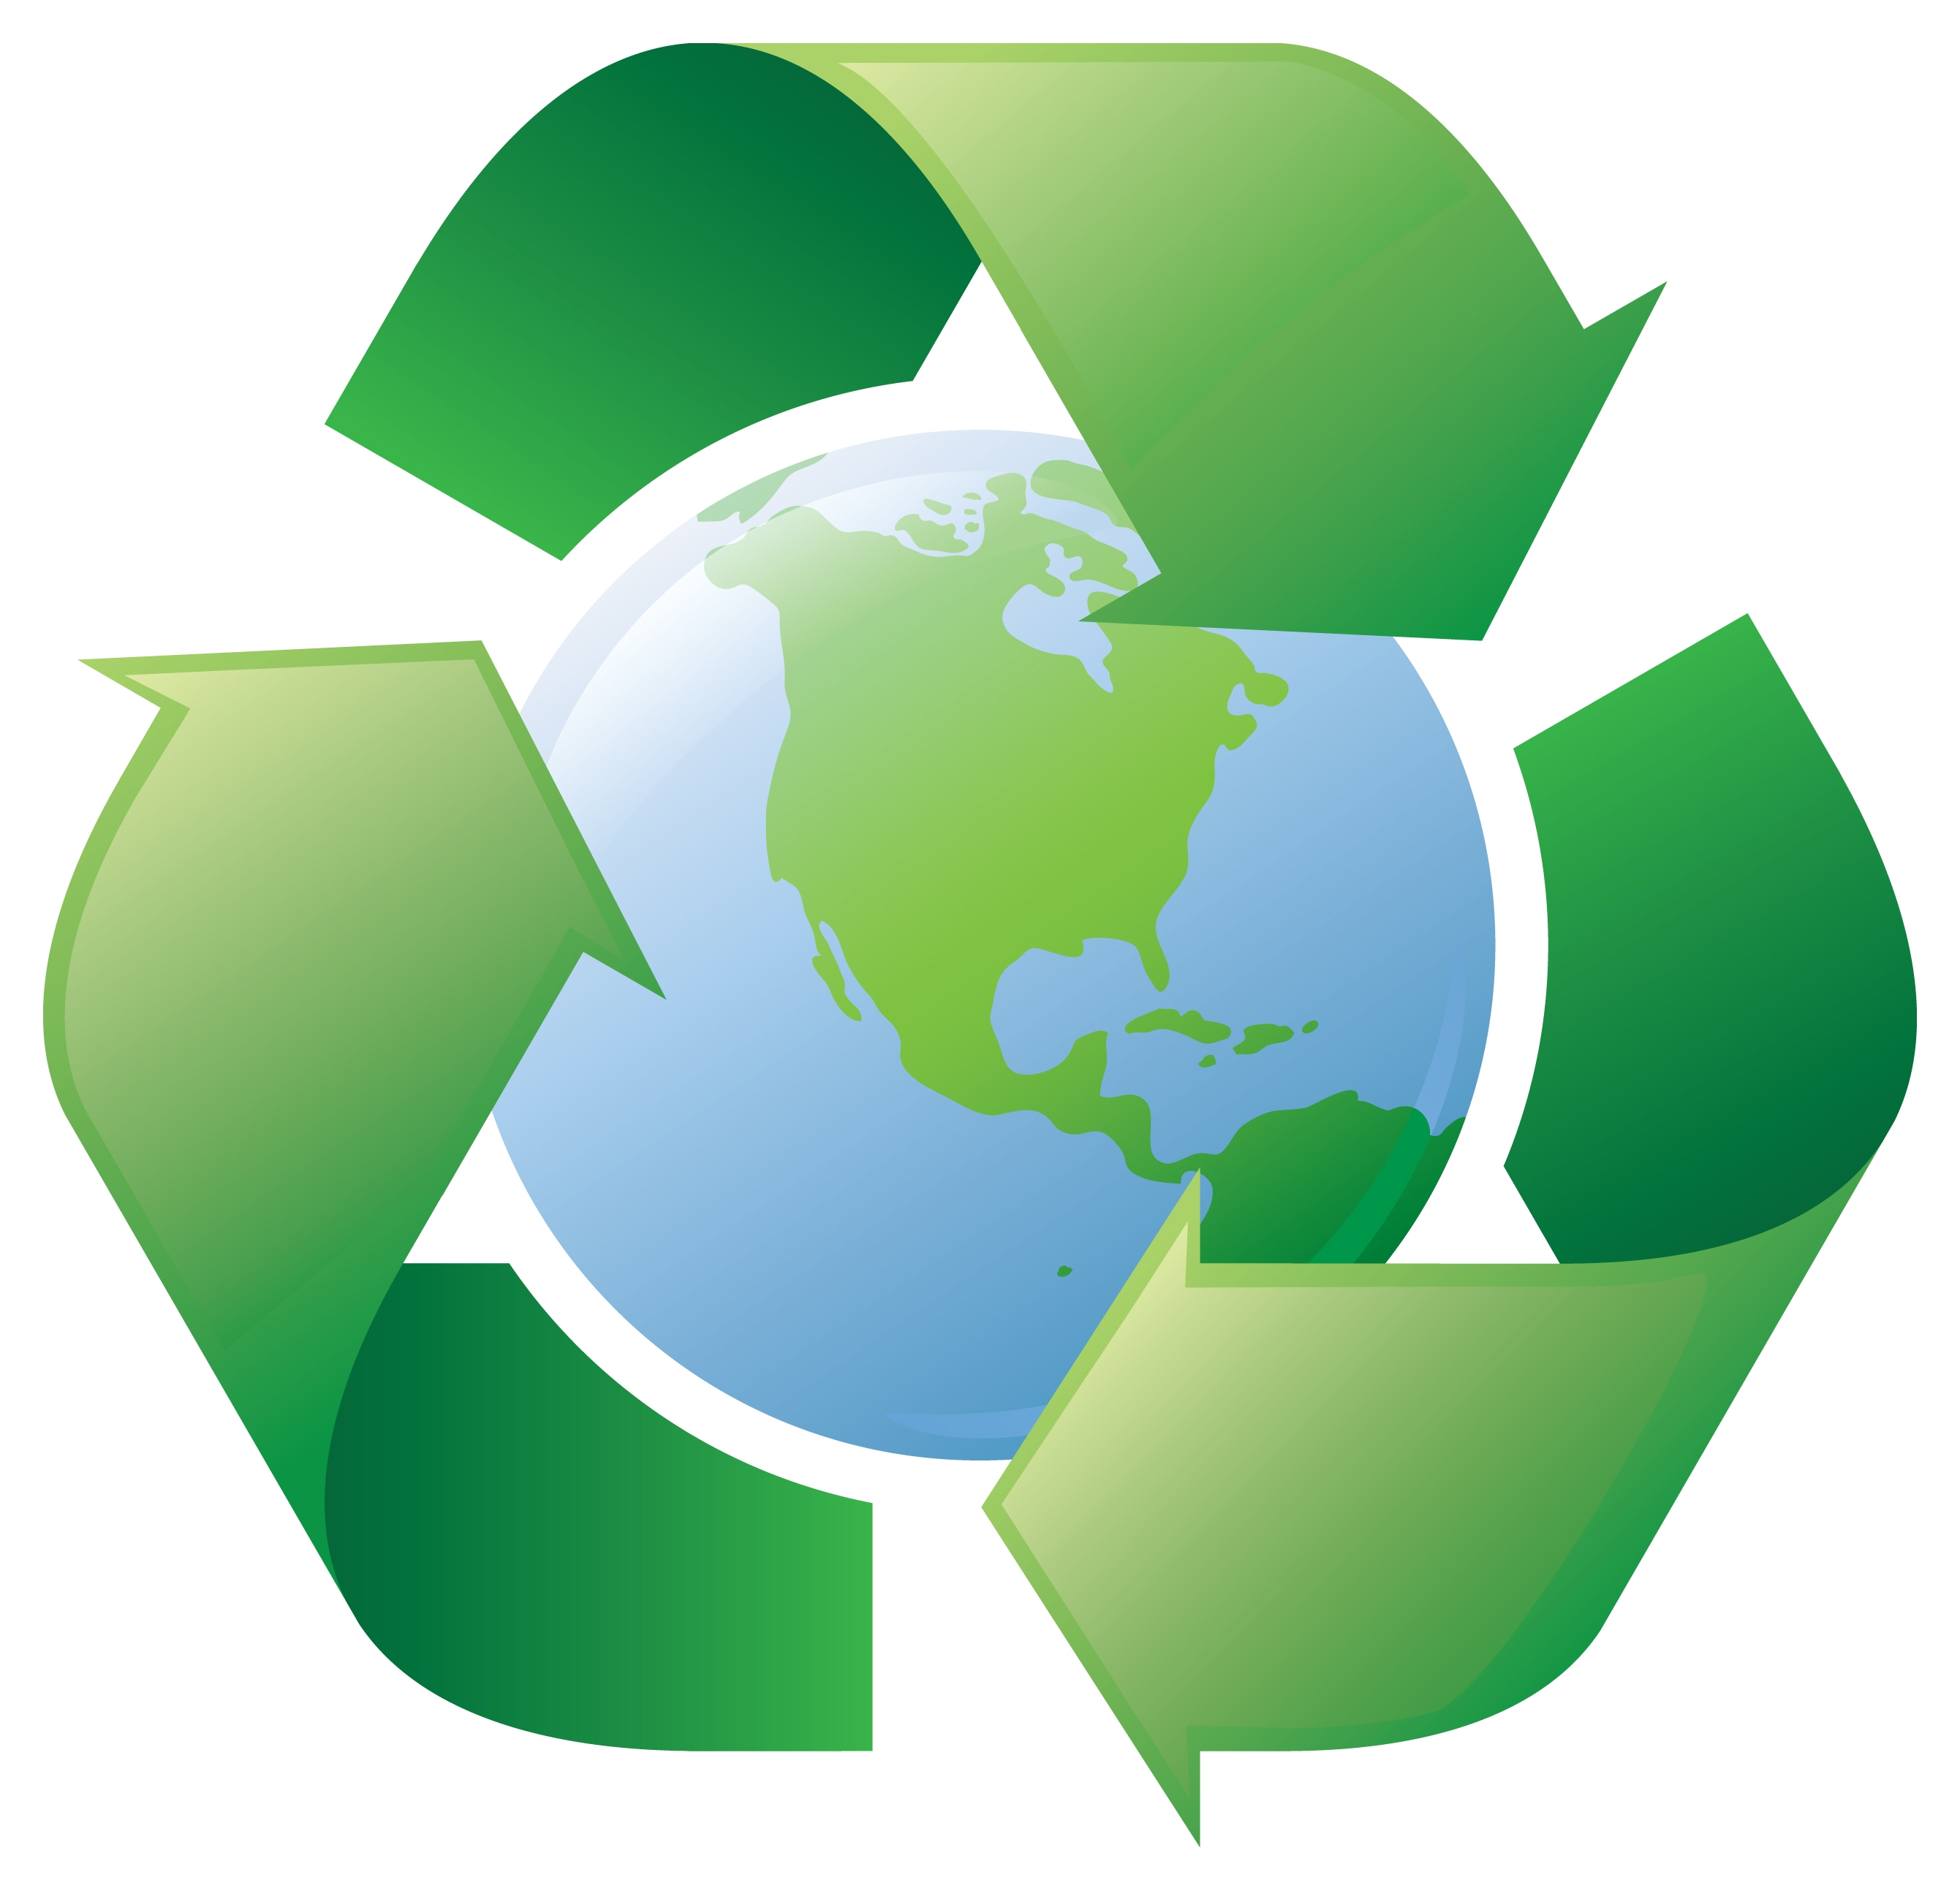 Download High Quality recycle clipart recycling symbol.